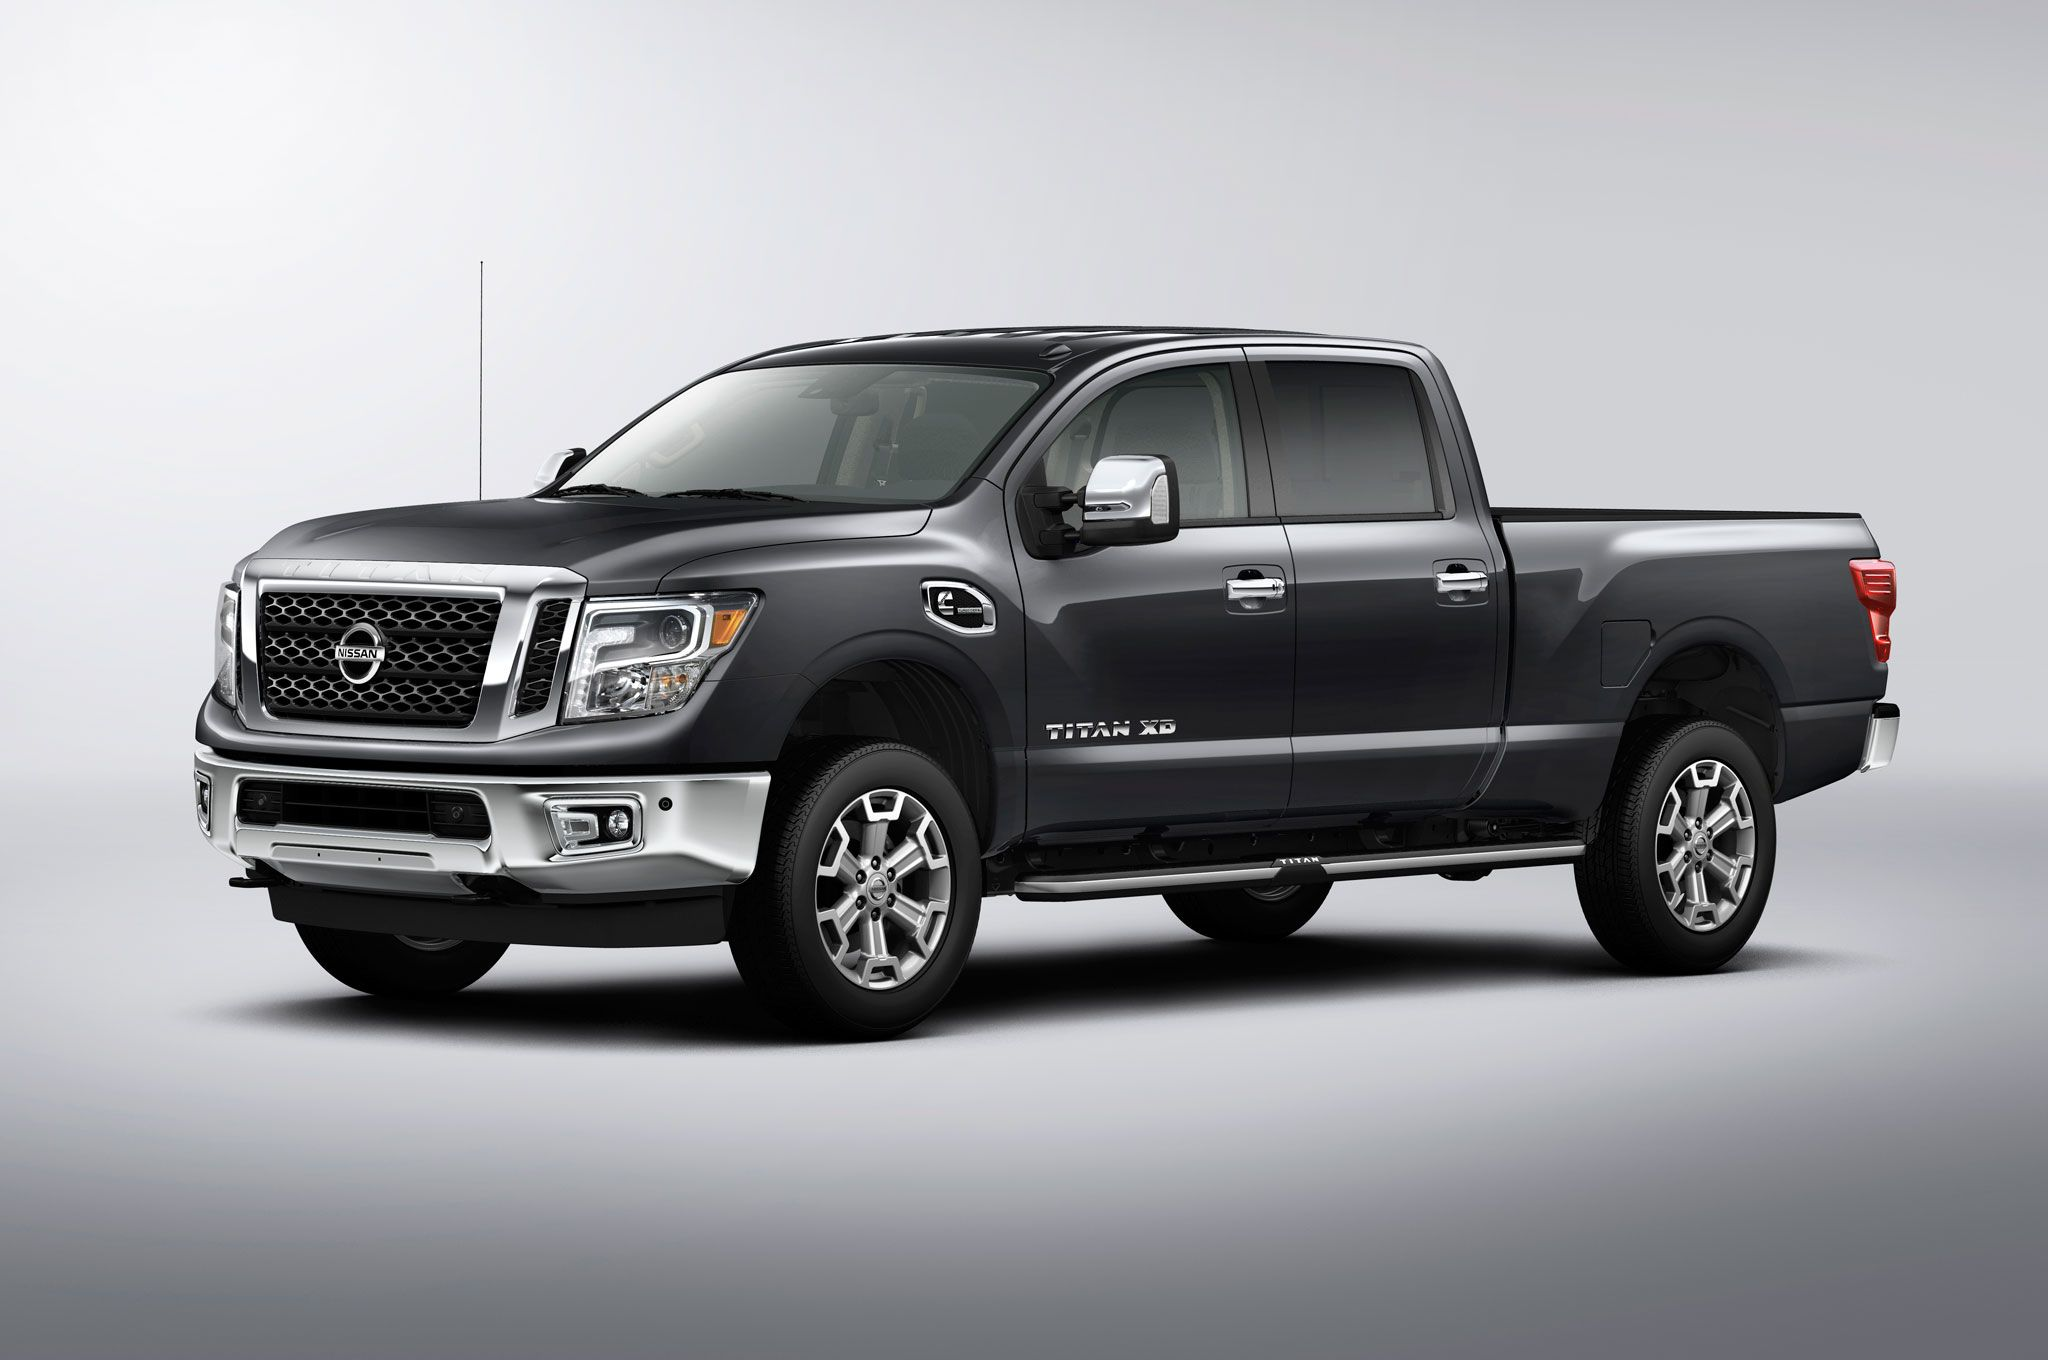 The Titan XD fails the numbers test in my books. Source: http://image.trucktrend.com/f/85408568+re0+ar0+st0/2016-nissan-titan-xd-sl-left-front-angle.jpg